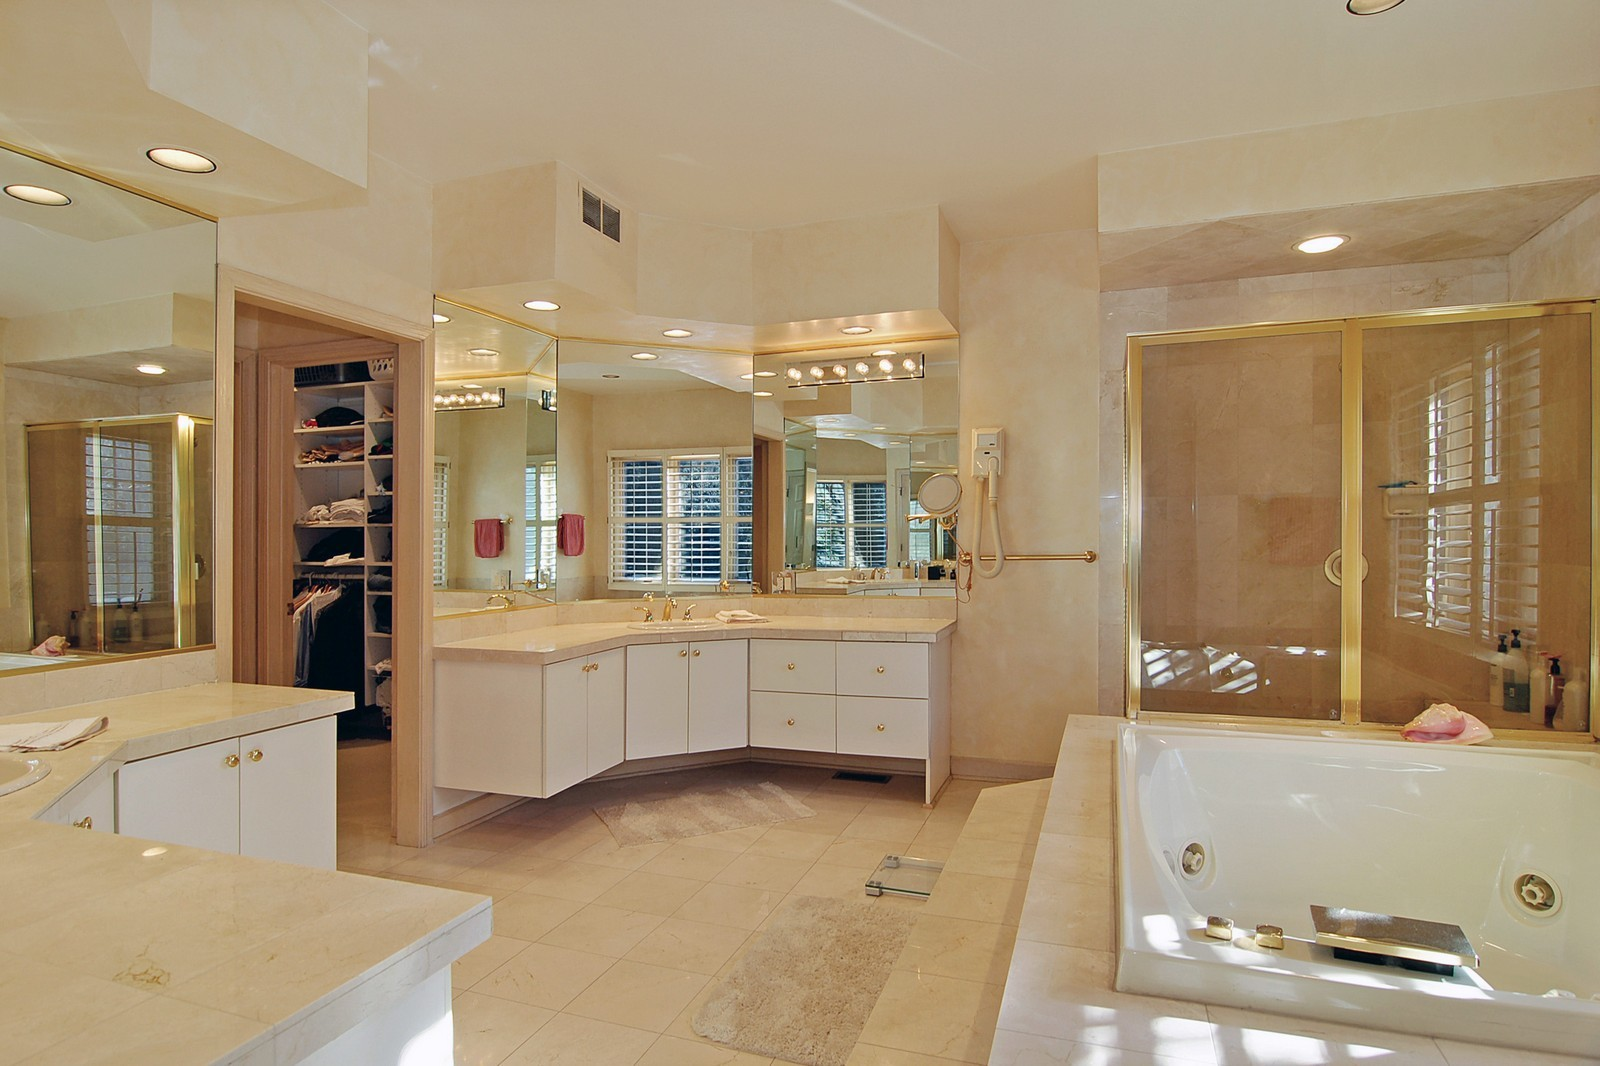 Real Estate Photography - 656 E 6th St, Hinsdale, IL, 60521 - Master Bathroom